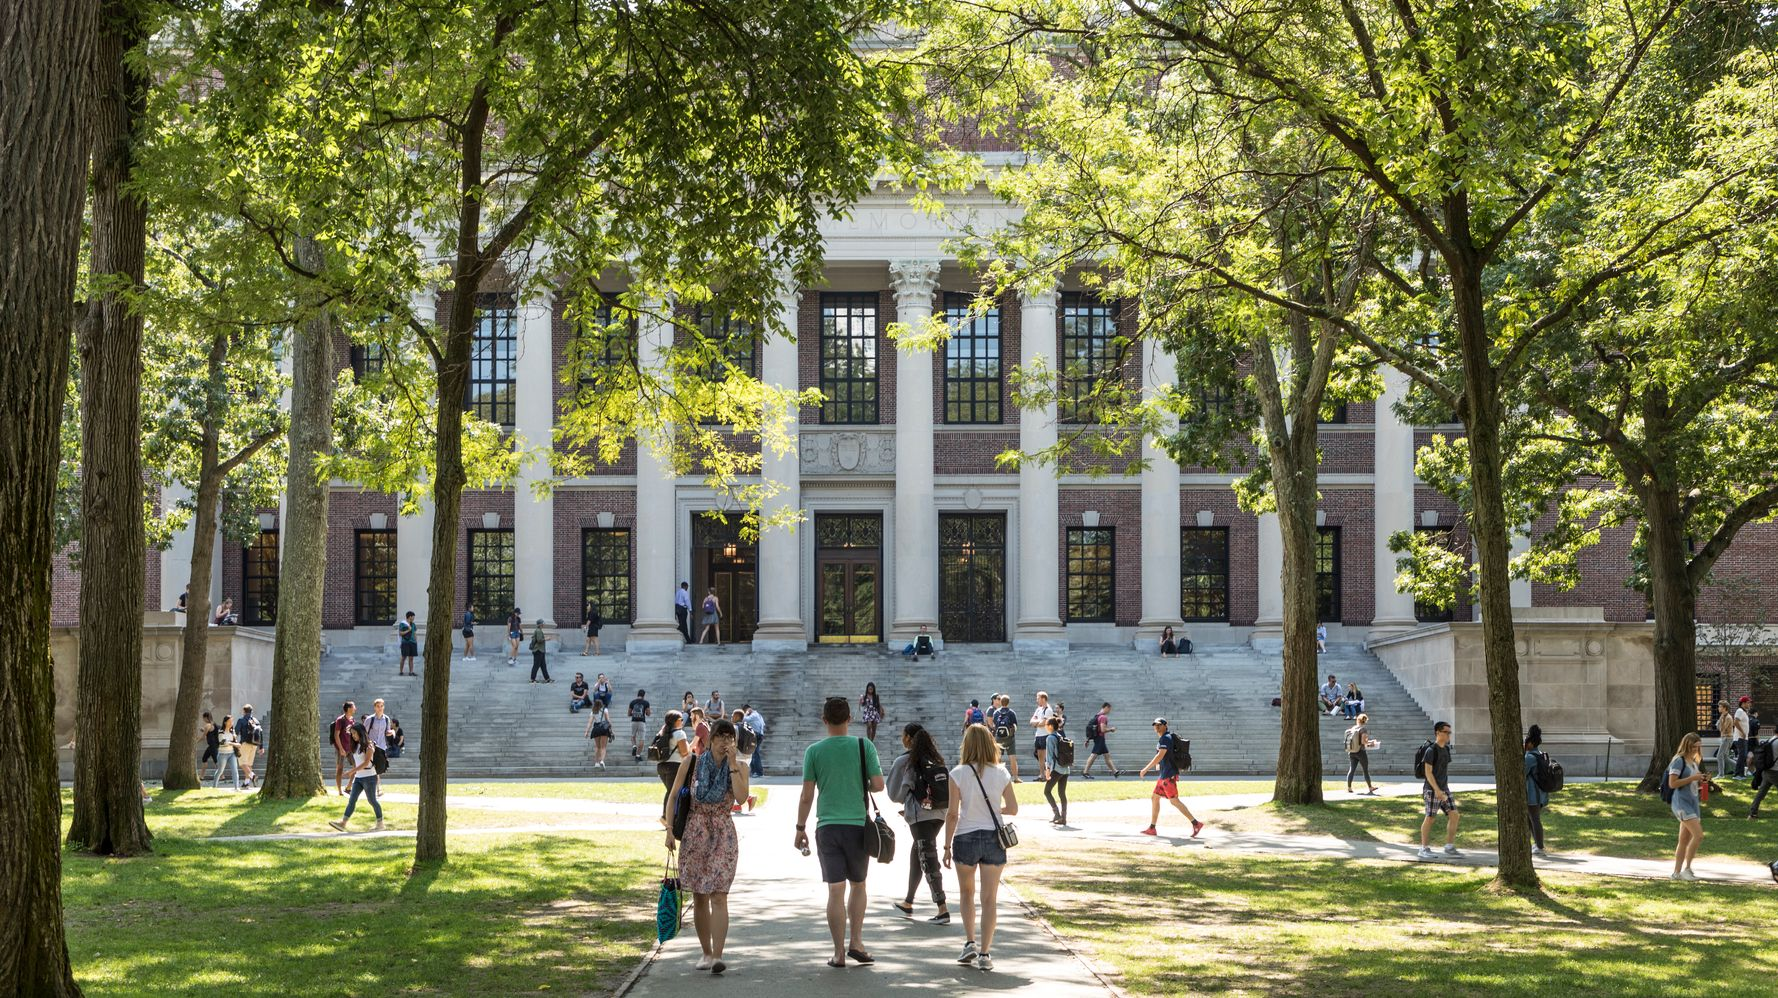 Appeals Court Clears Harvard Of Racial Bias In Admissions